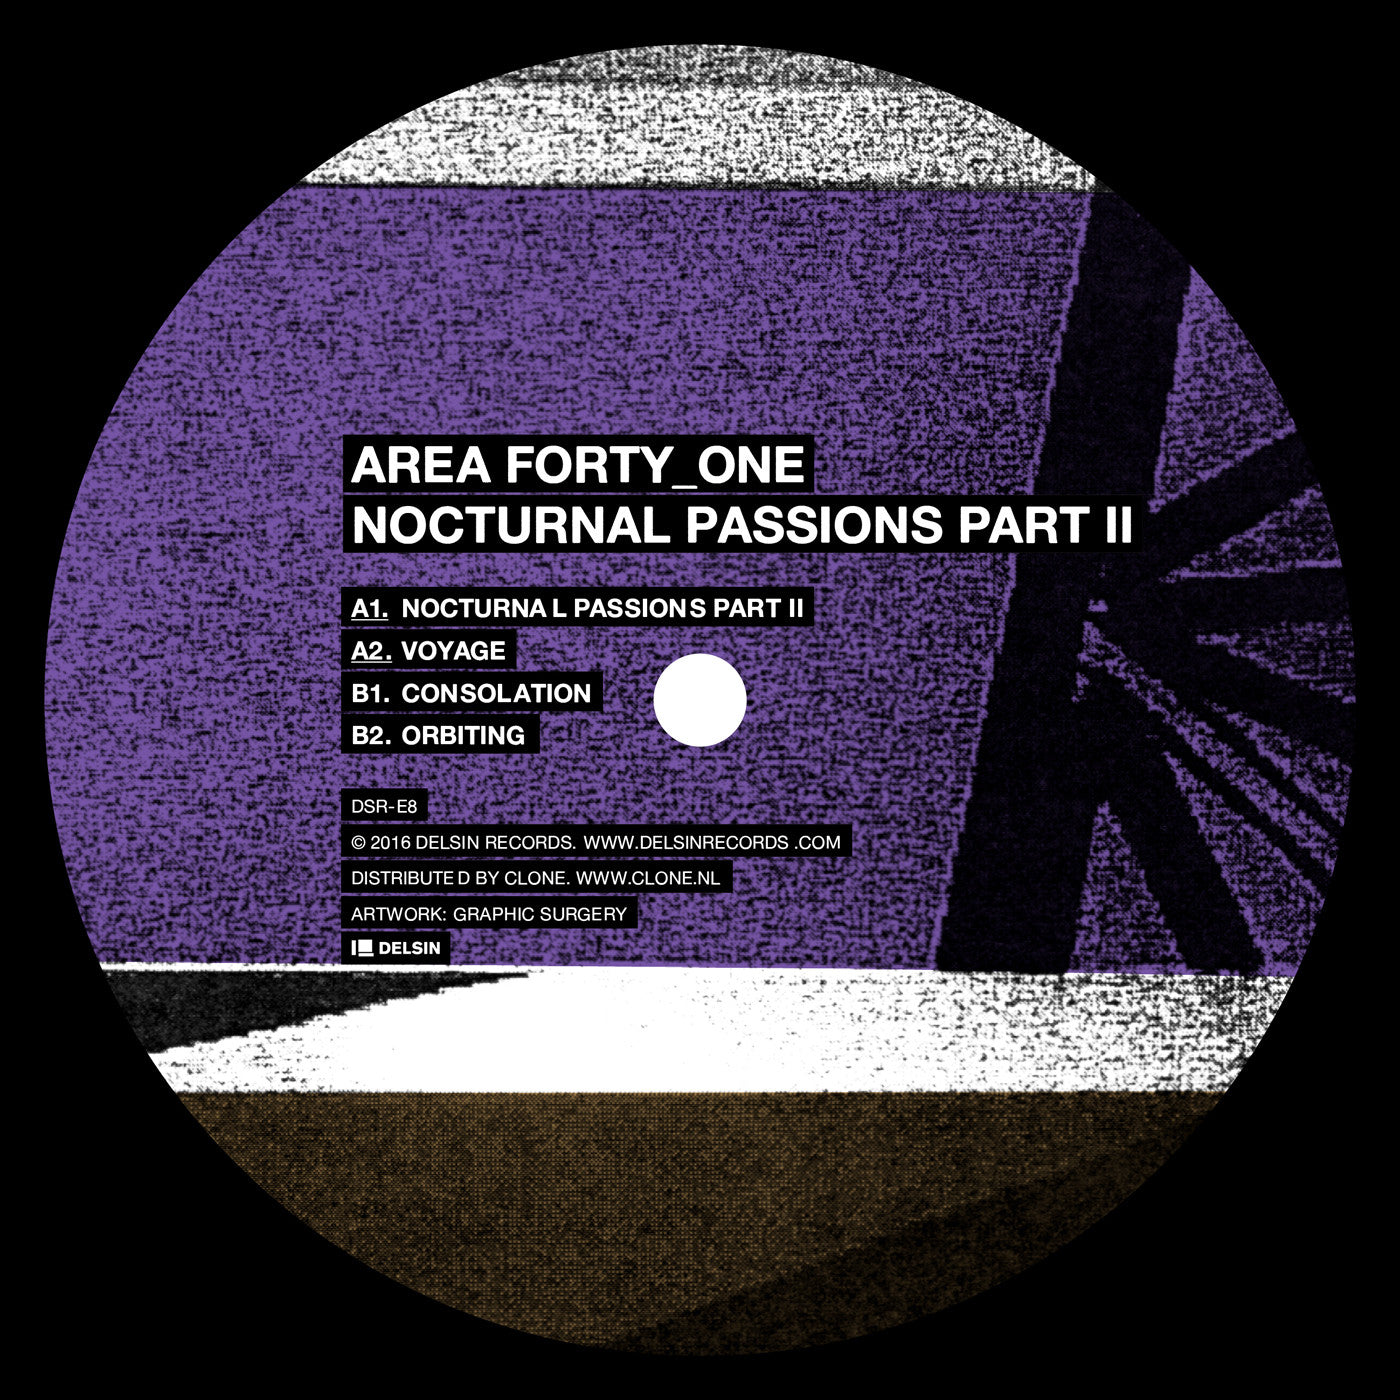 Area Forty_One - Nocturnal Passions, Part II - Unearthed Sounds